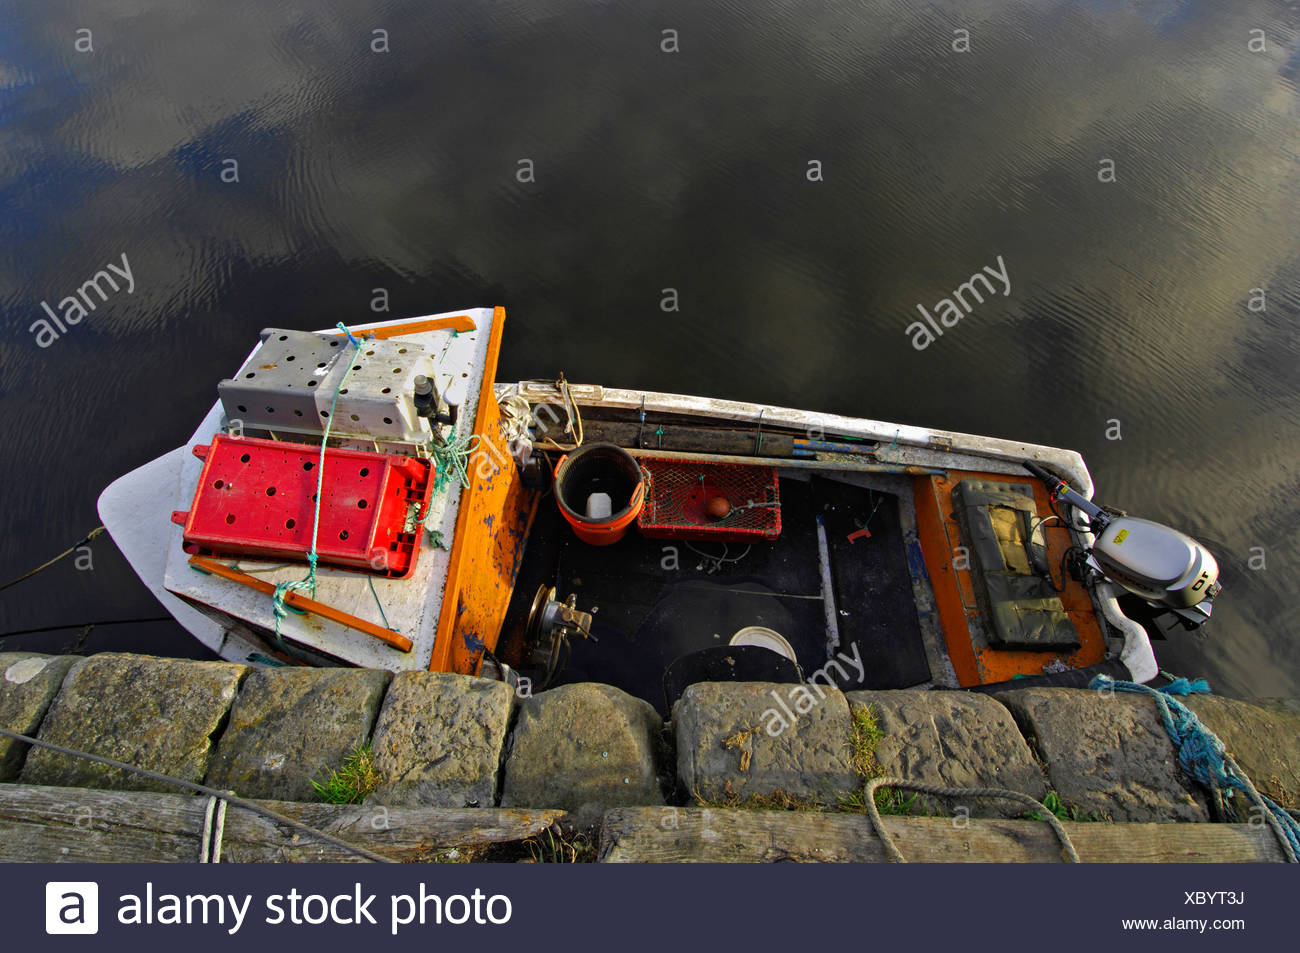 Small fishing-smack seen from above in Brora harbour, Sutherland, northern Scotland, UK - Stock Image